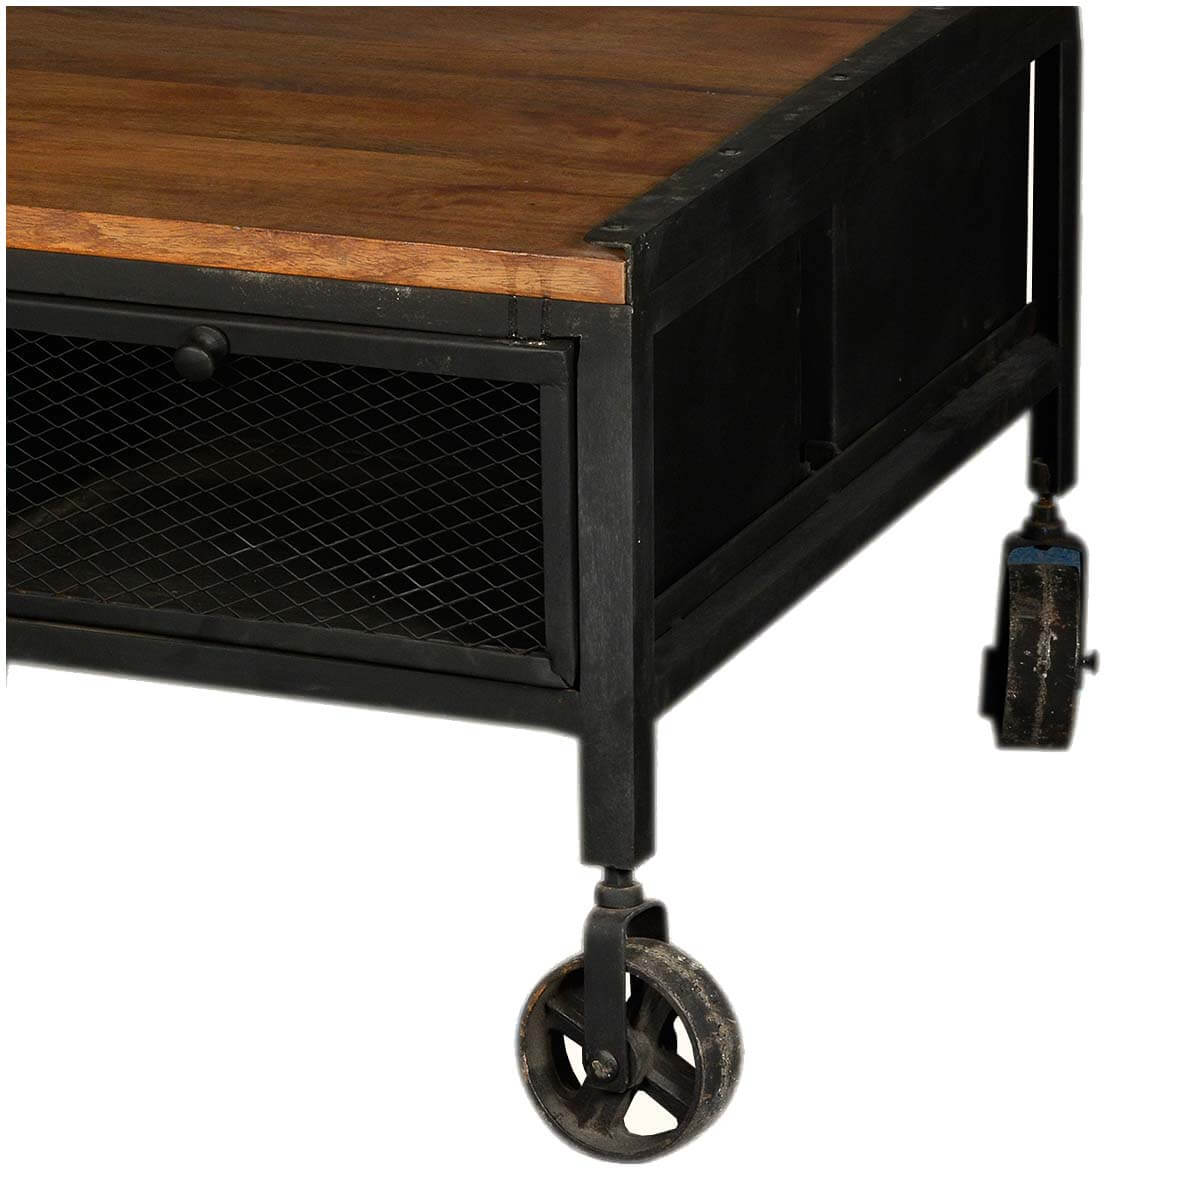 Industrial Coffee Table Rustic: Aiden Industrial Rustic Coffee Table With Drawers